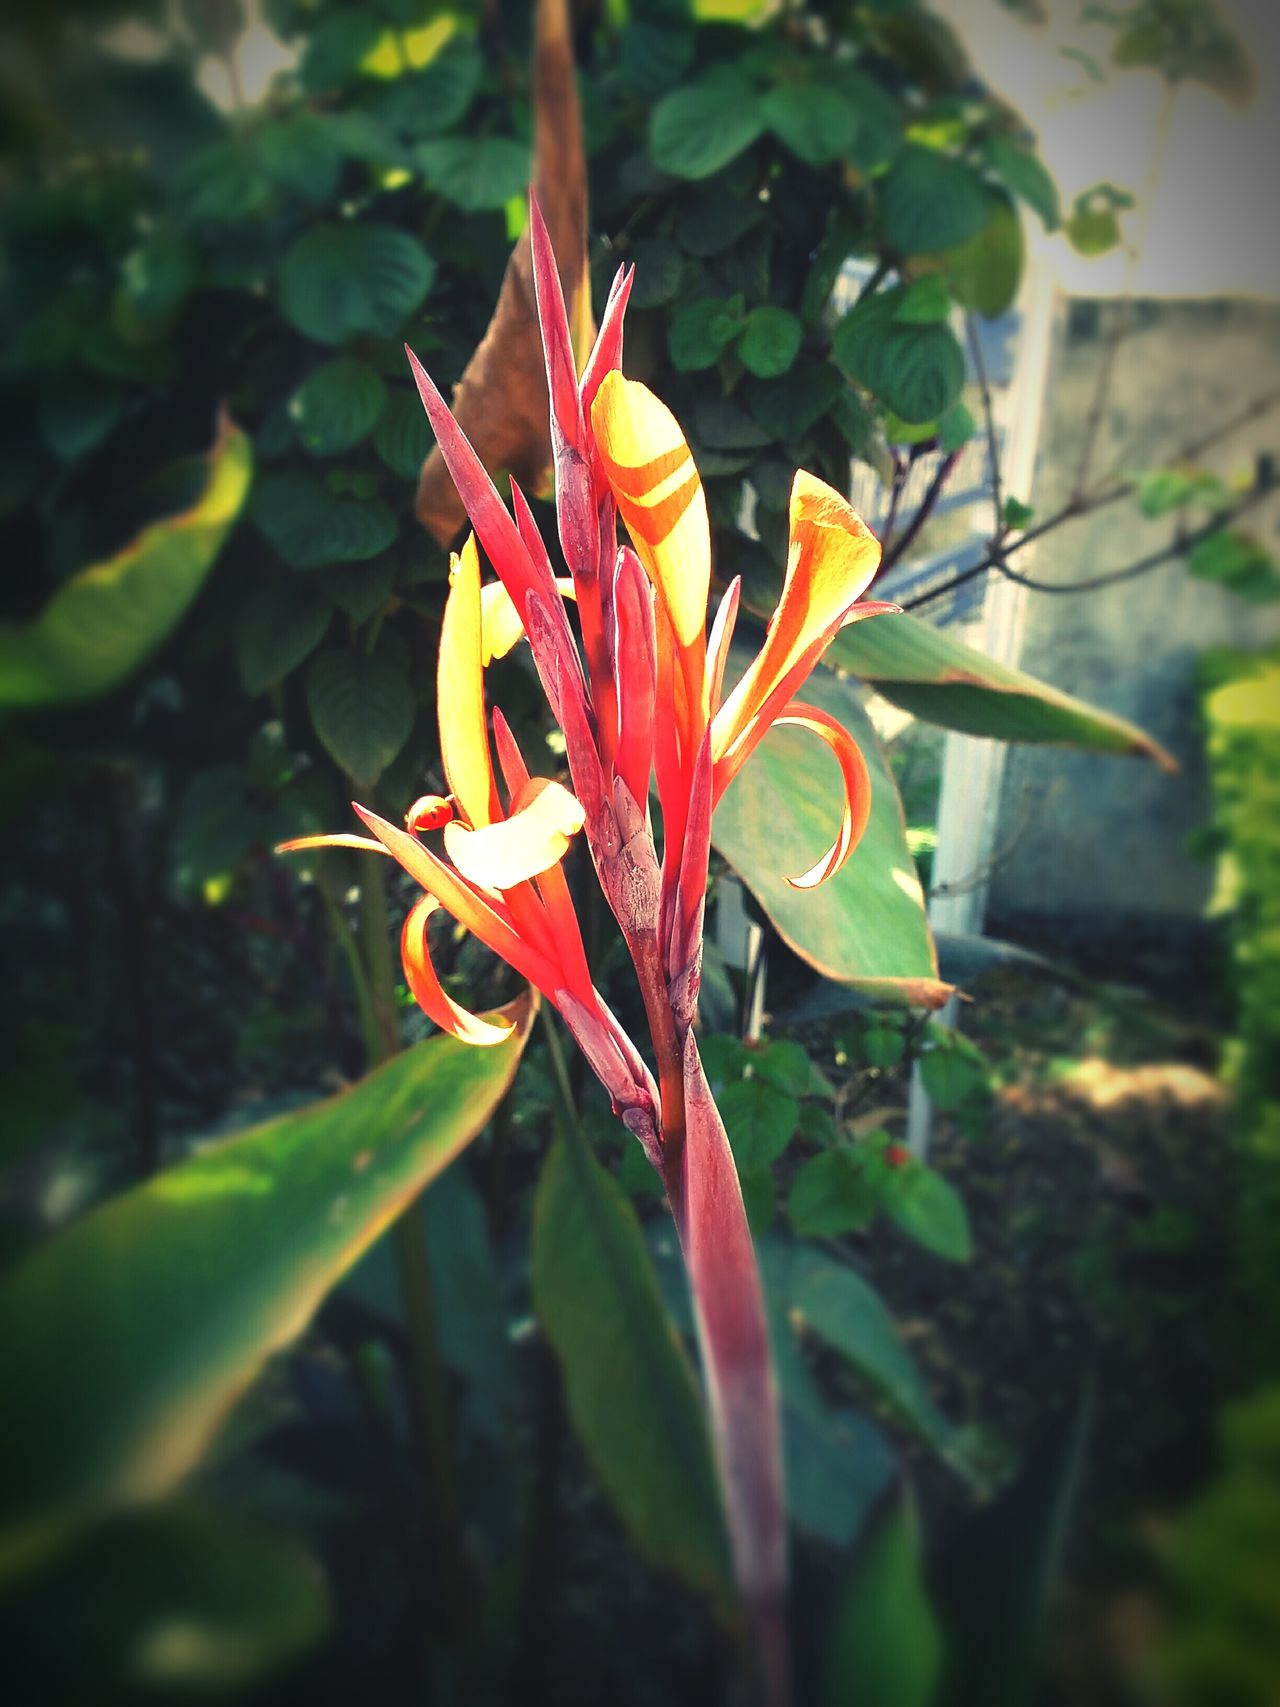 Mobile Photography Sunlight Outdoor Photography Outdoors❤ Red Flowers Leaves🌿 Edited My Way Edited This Myself Leaves 🍁 Nature Flowers, Nature And Beauty Beauty In Nature Multi Colored Outdoor Life Tranquility Outdoorlife Close-up Fragility Growth